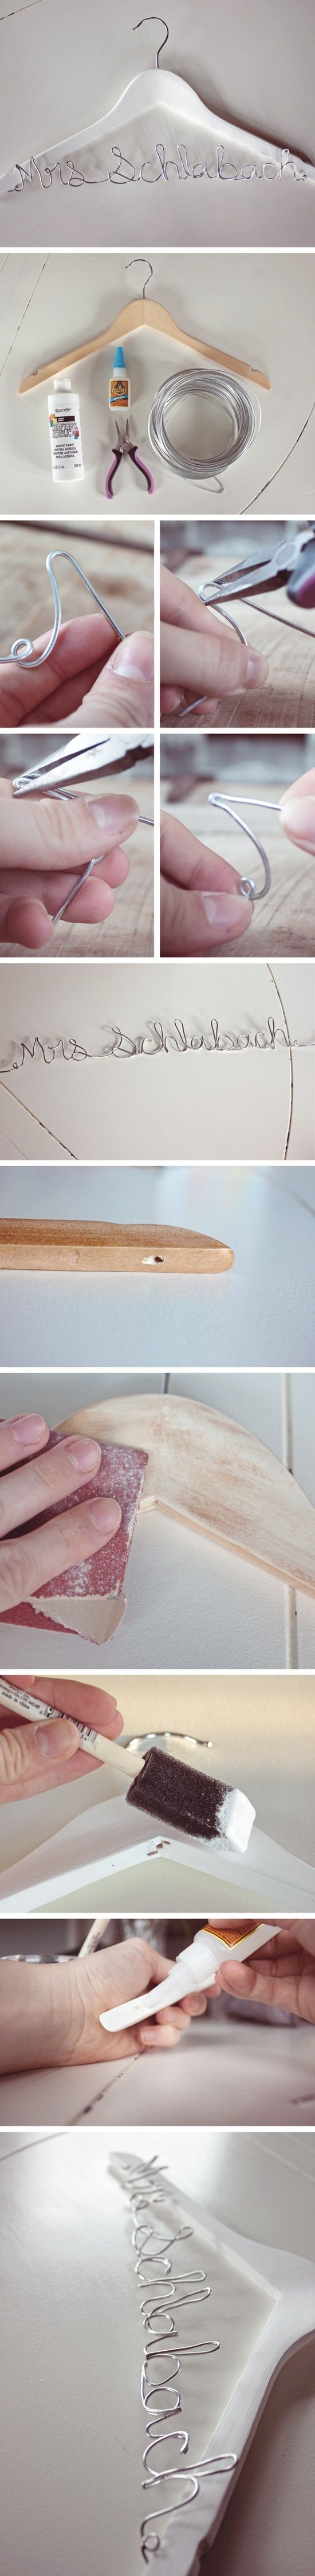 Will use this tut to make a jewelry hanger. How to make a custom hanger with bride's last name. DIY tutorial from O Hi, O Love @ DIY Home Crafts